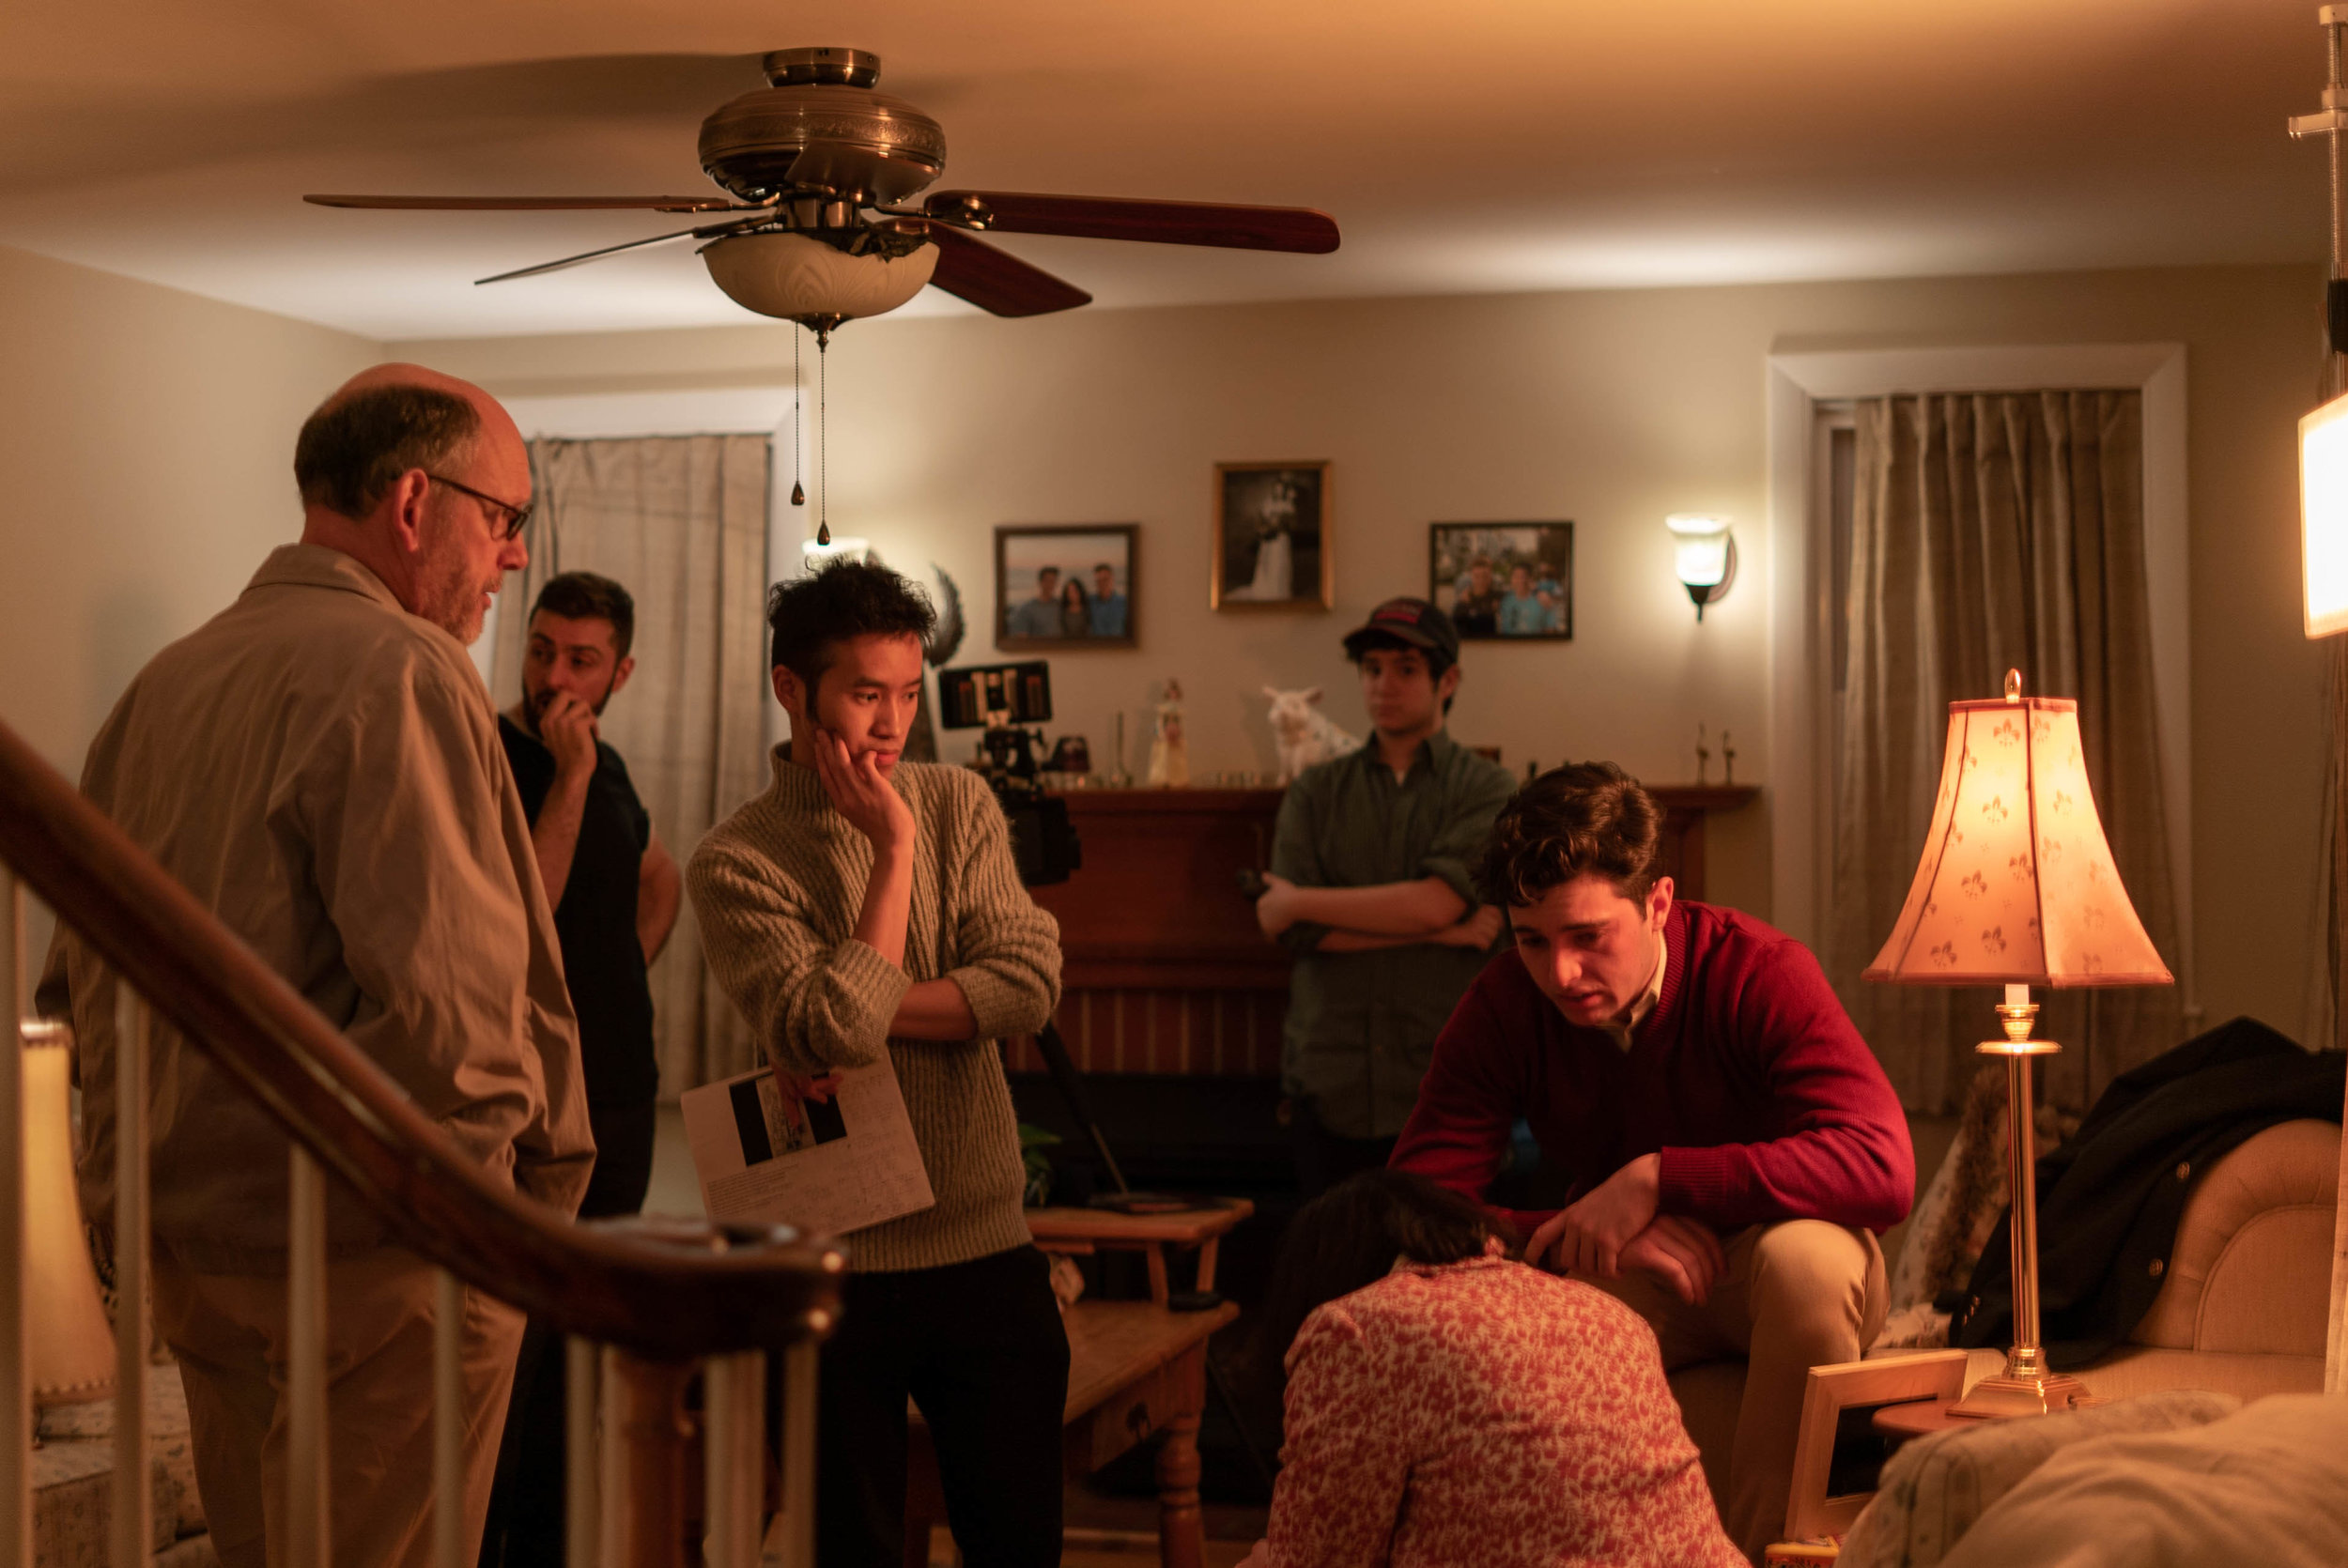 Behind the scenes of Influence (Left to right: George Vezina (Greg) Director of Photography Neil Guliano, Director Indy Dang, Joshua Bermel (1st AC), Callie Beaulieu (June) and Kyle Brier (Cal))